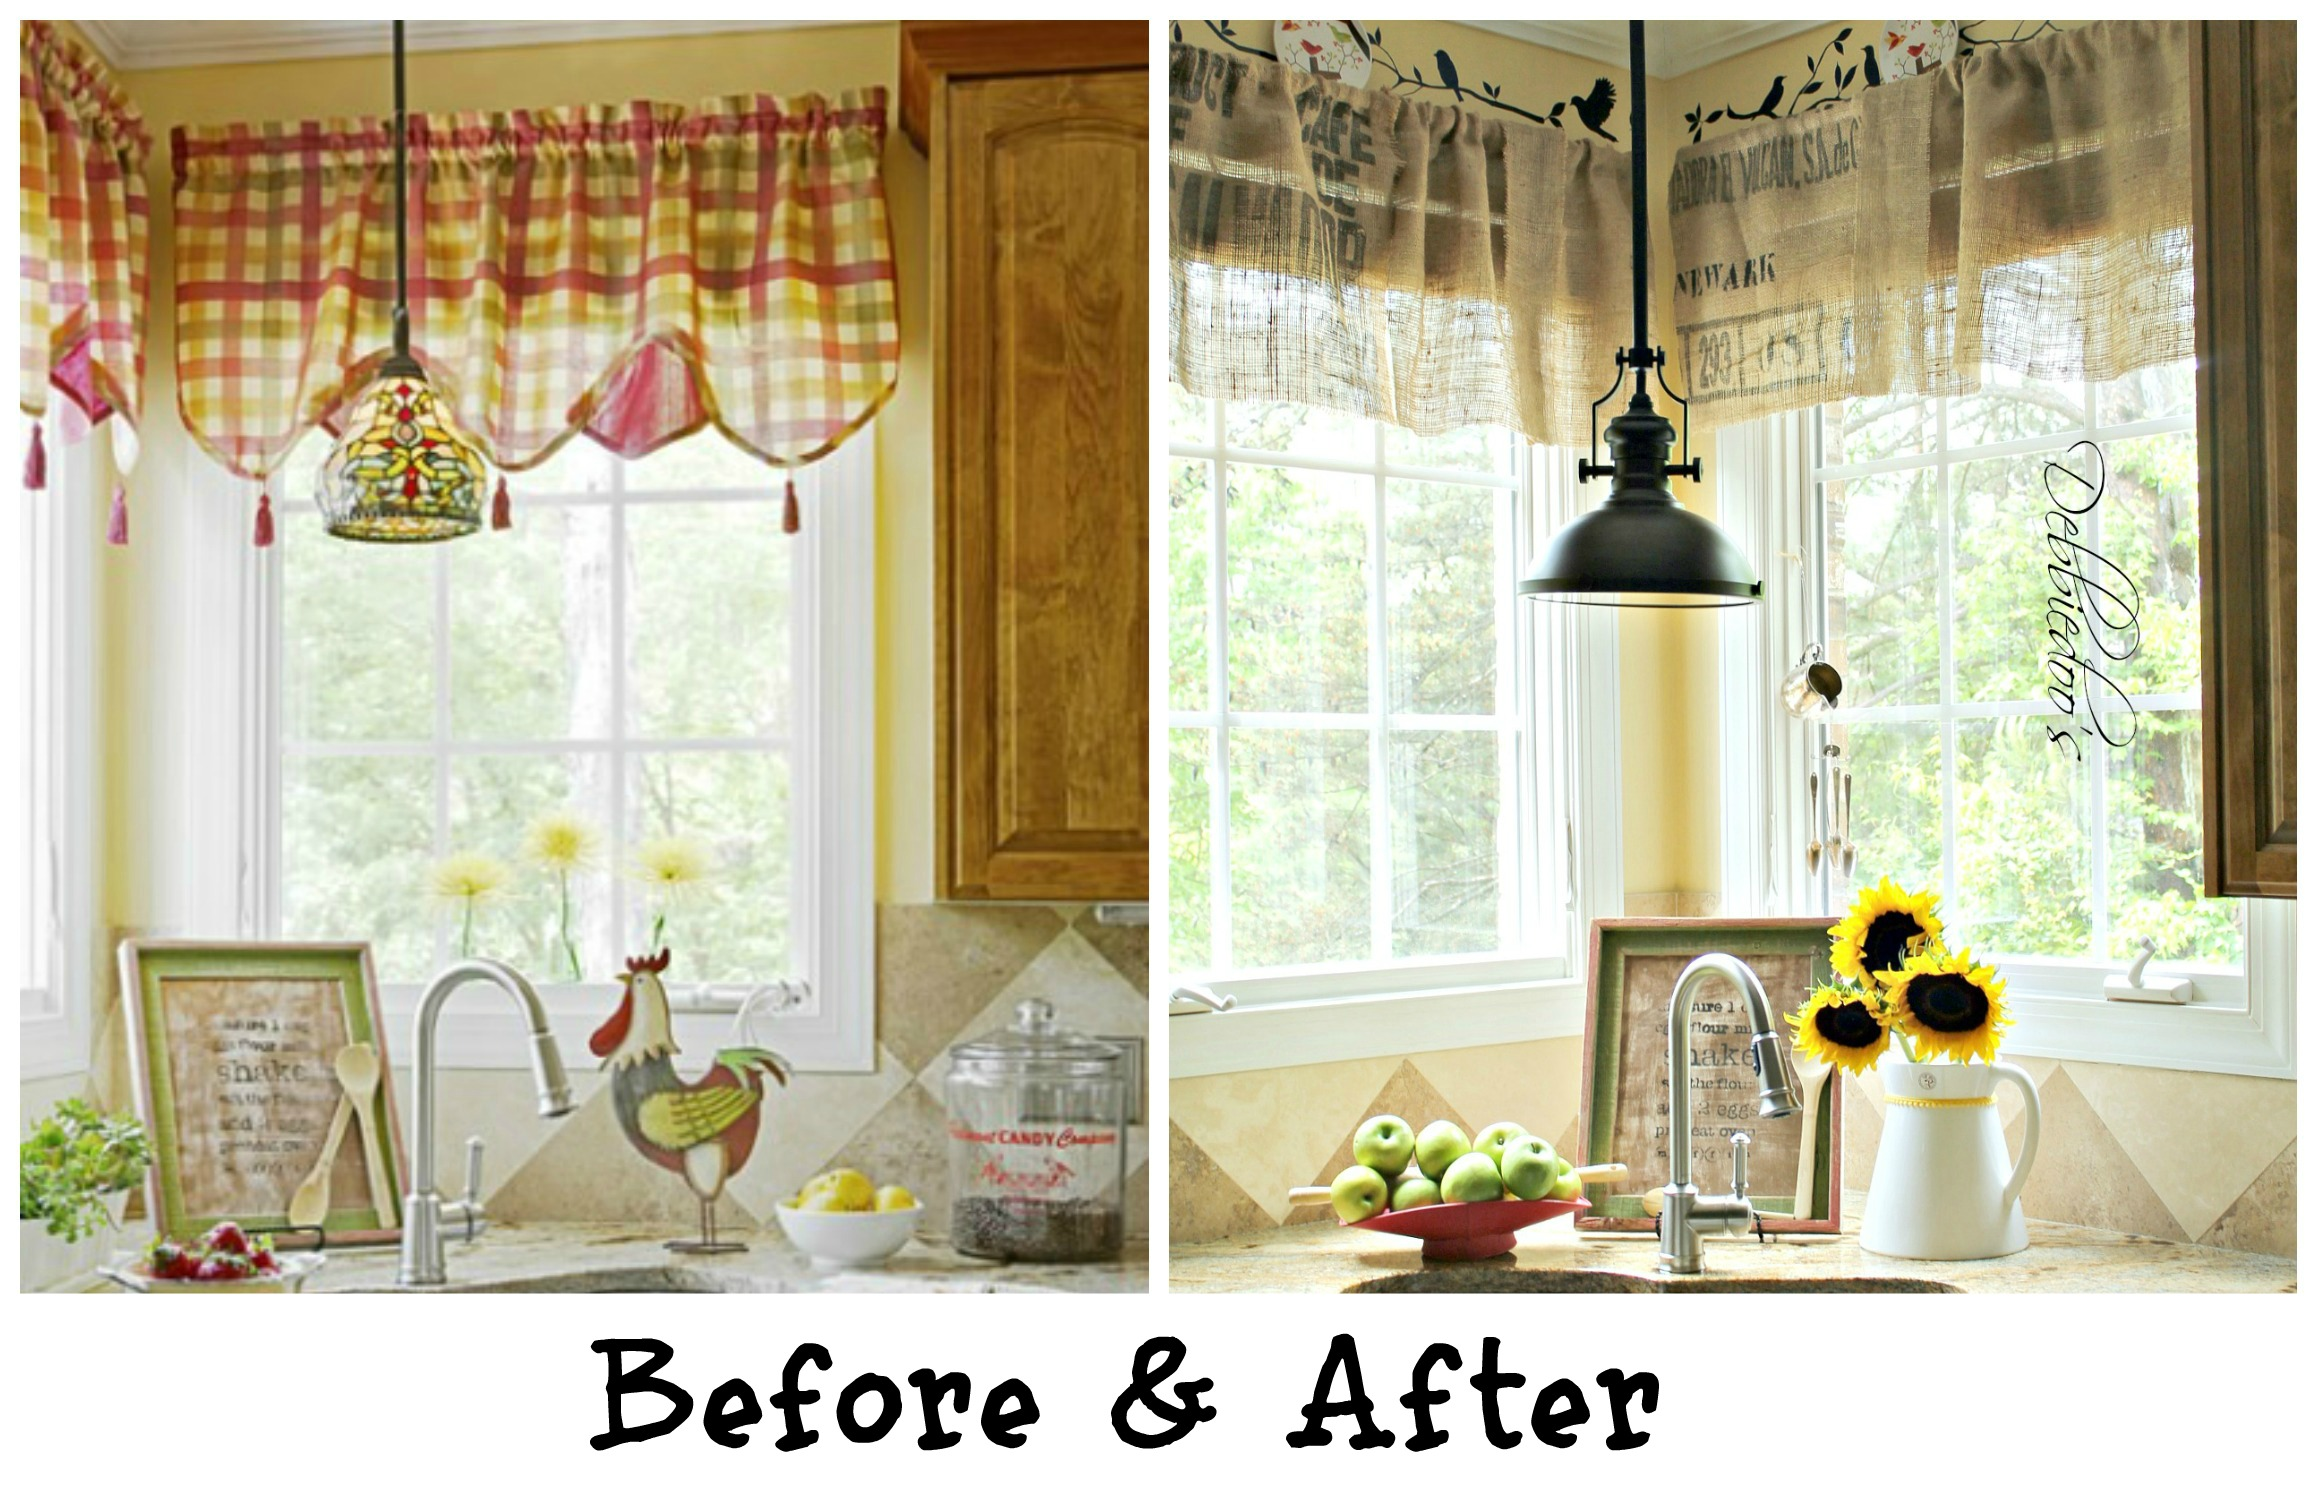 Diy No Sew Burlap Kitchen Valances De From Coffee Bags